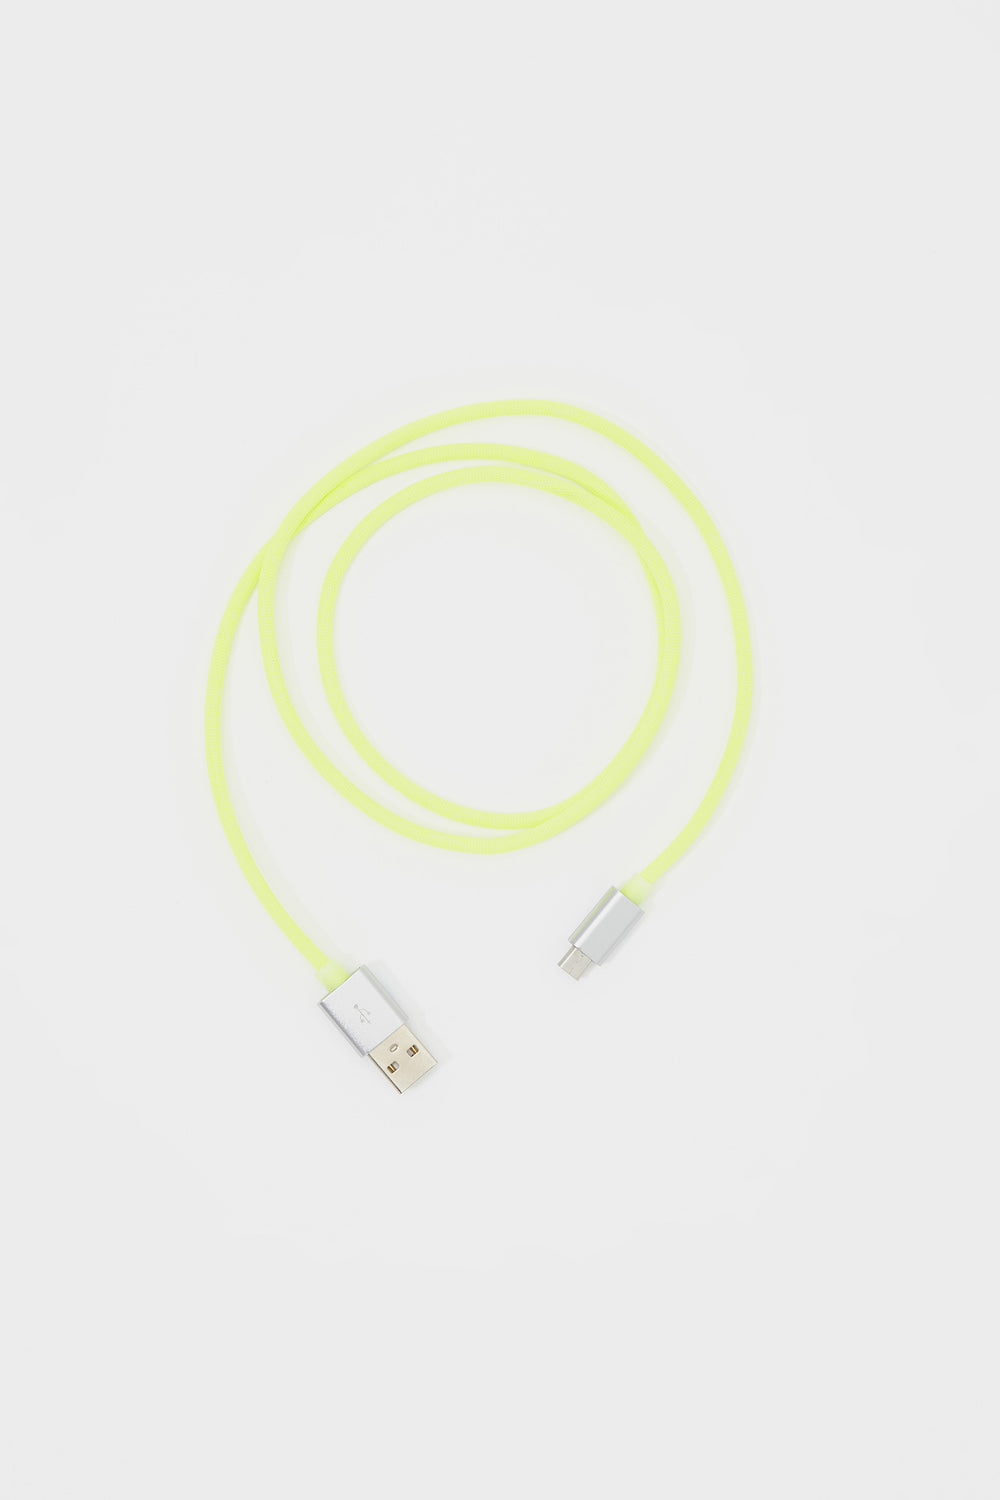 Neon Fabric Micro USB Cable Neon Yellow